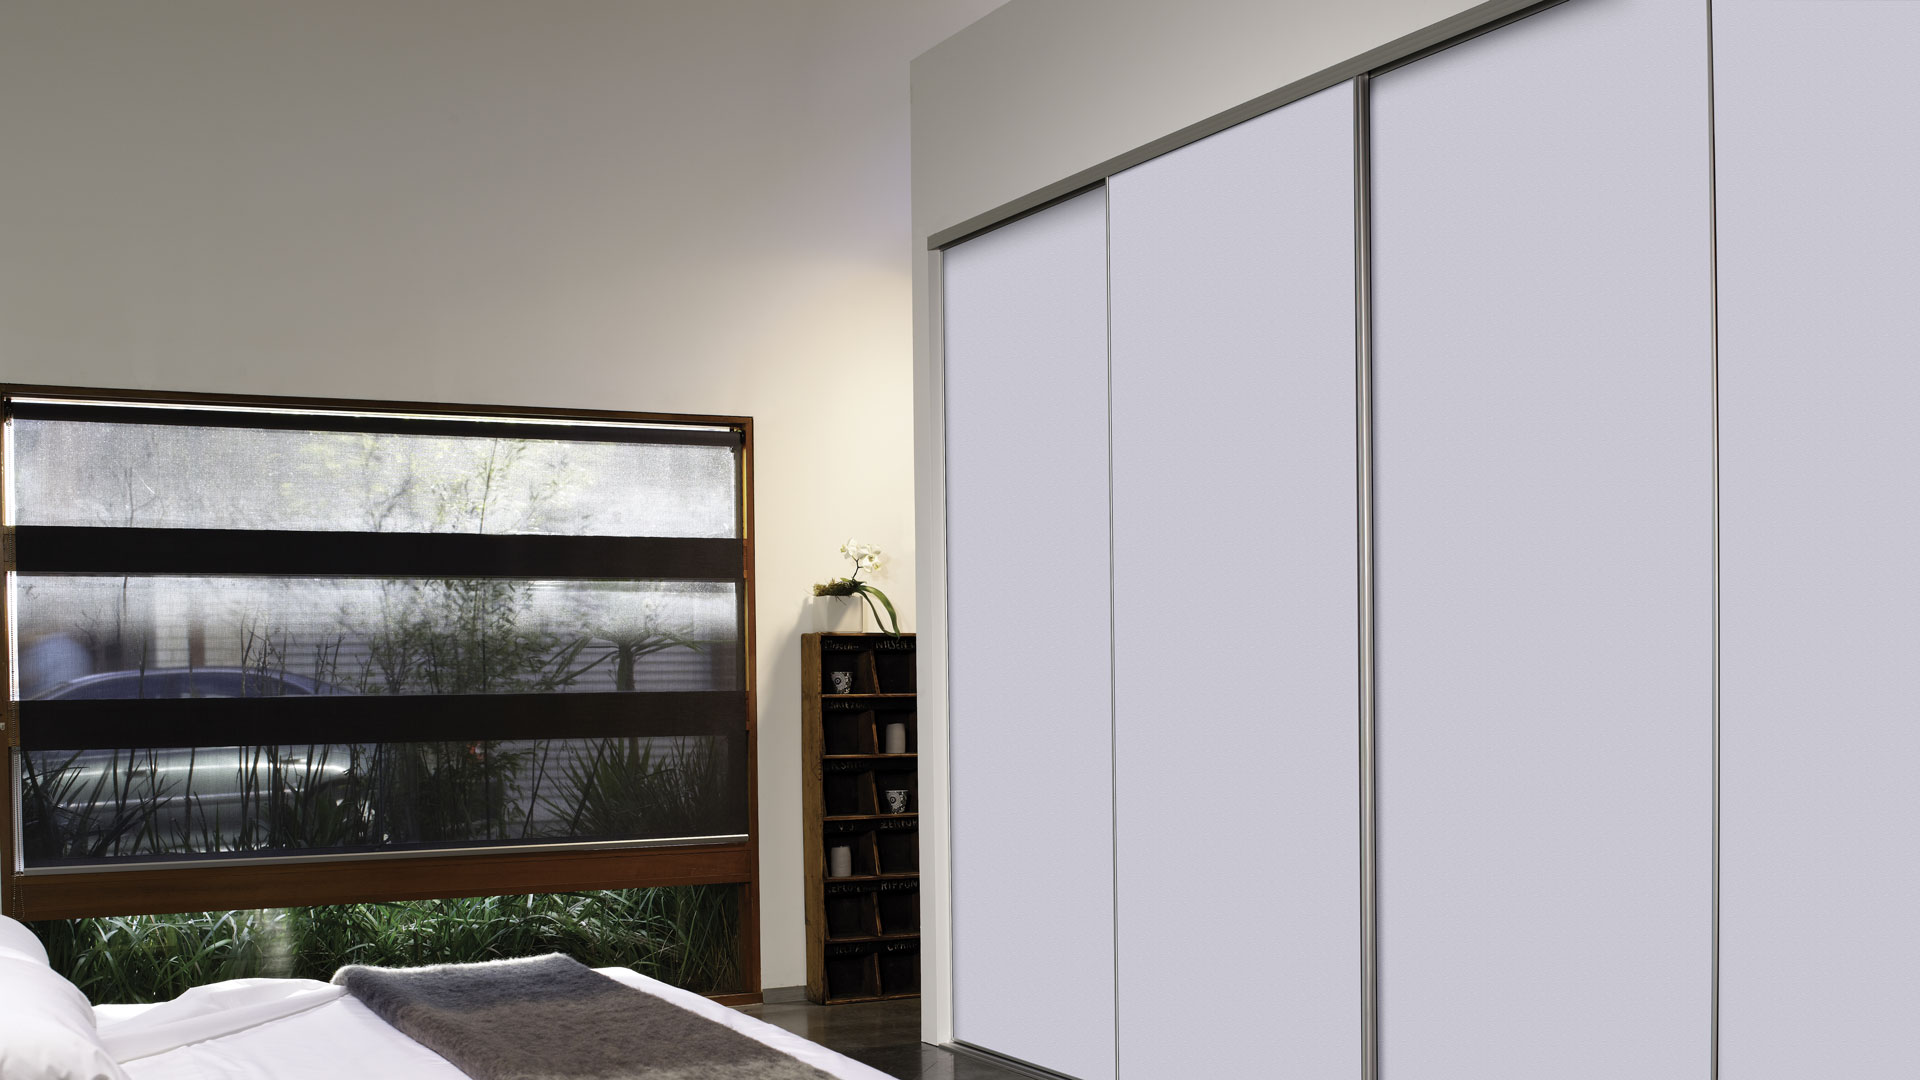 wardrobe door system with white panels